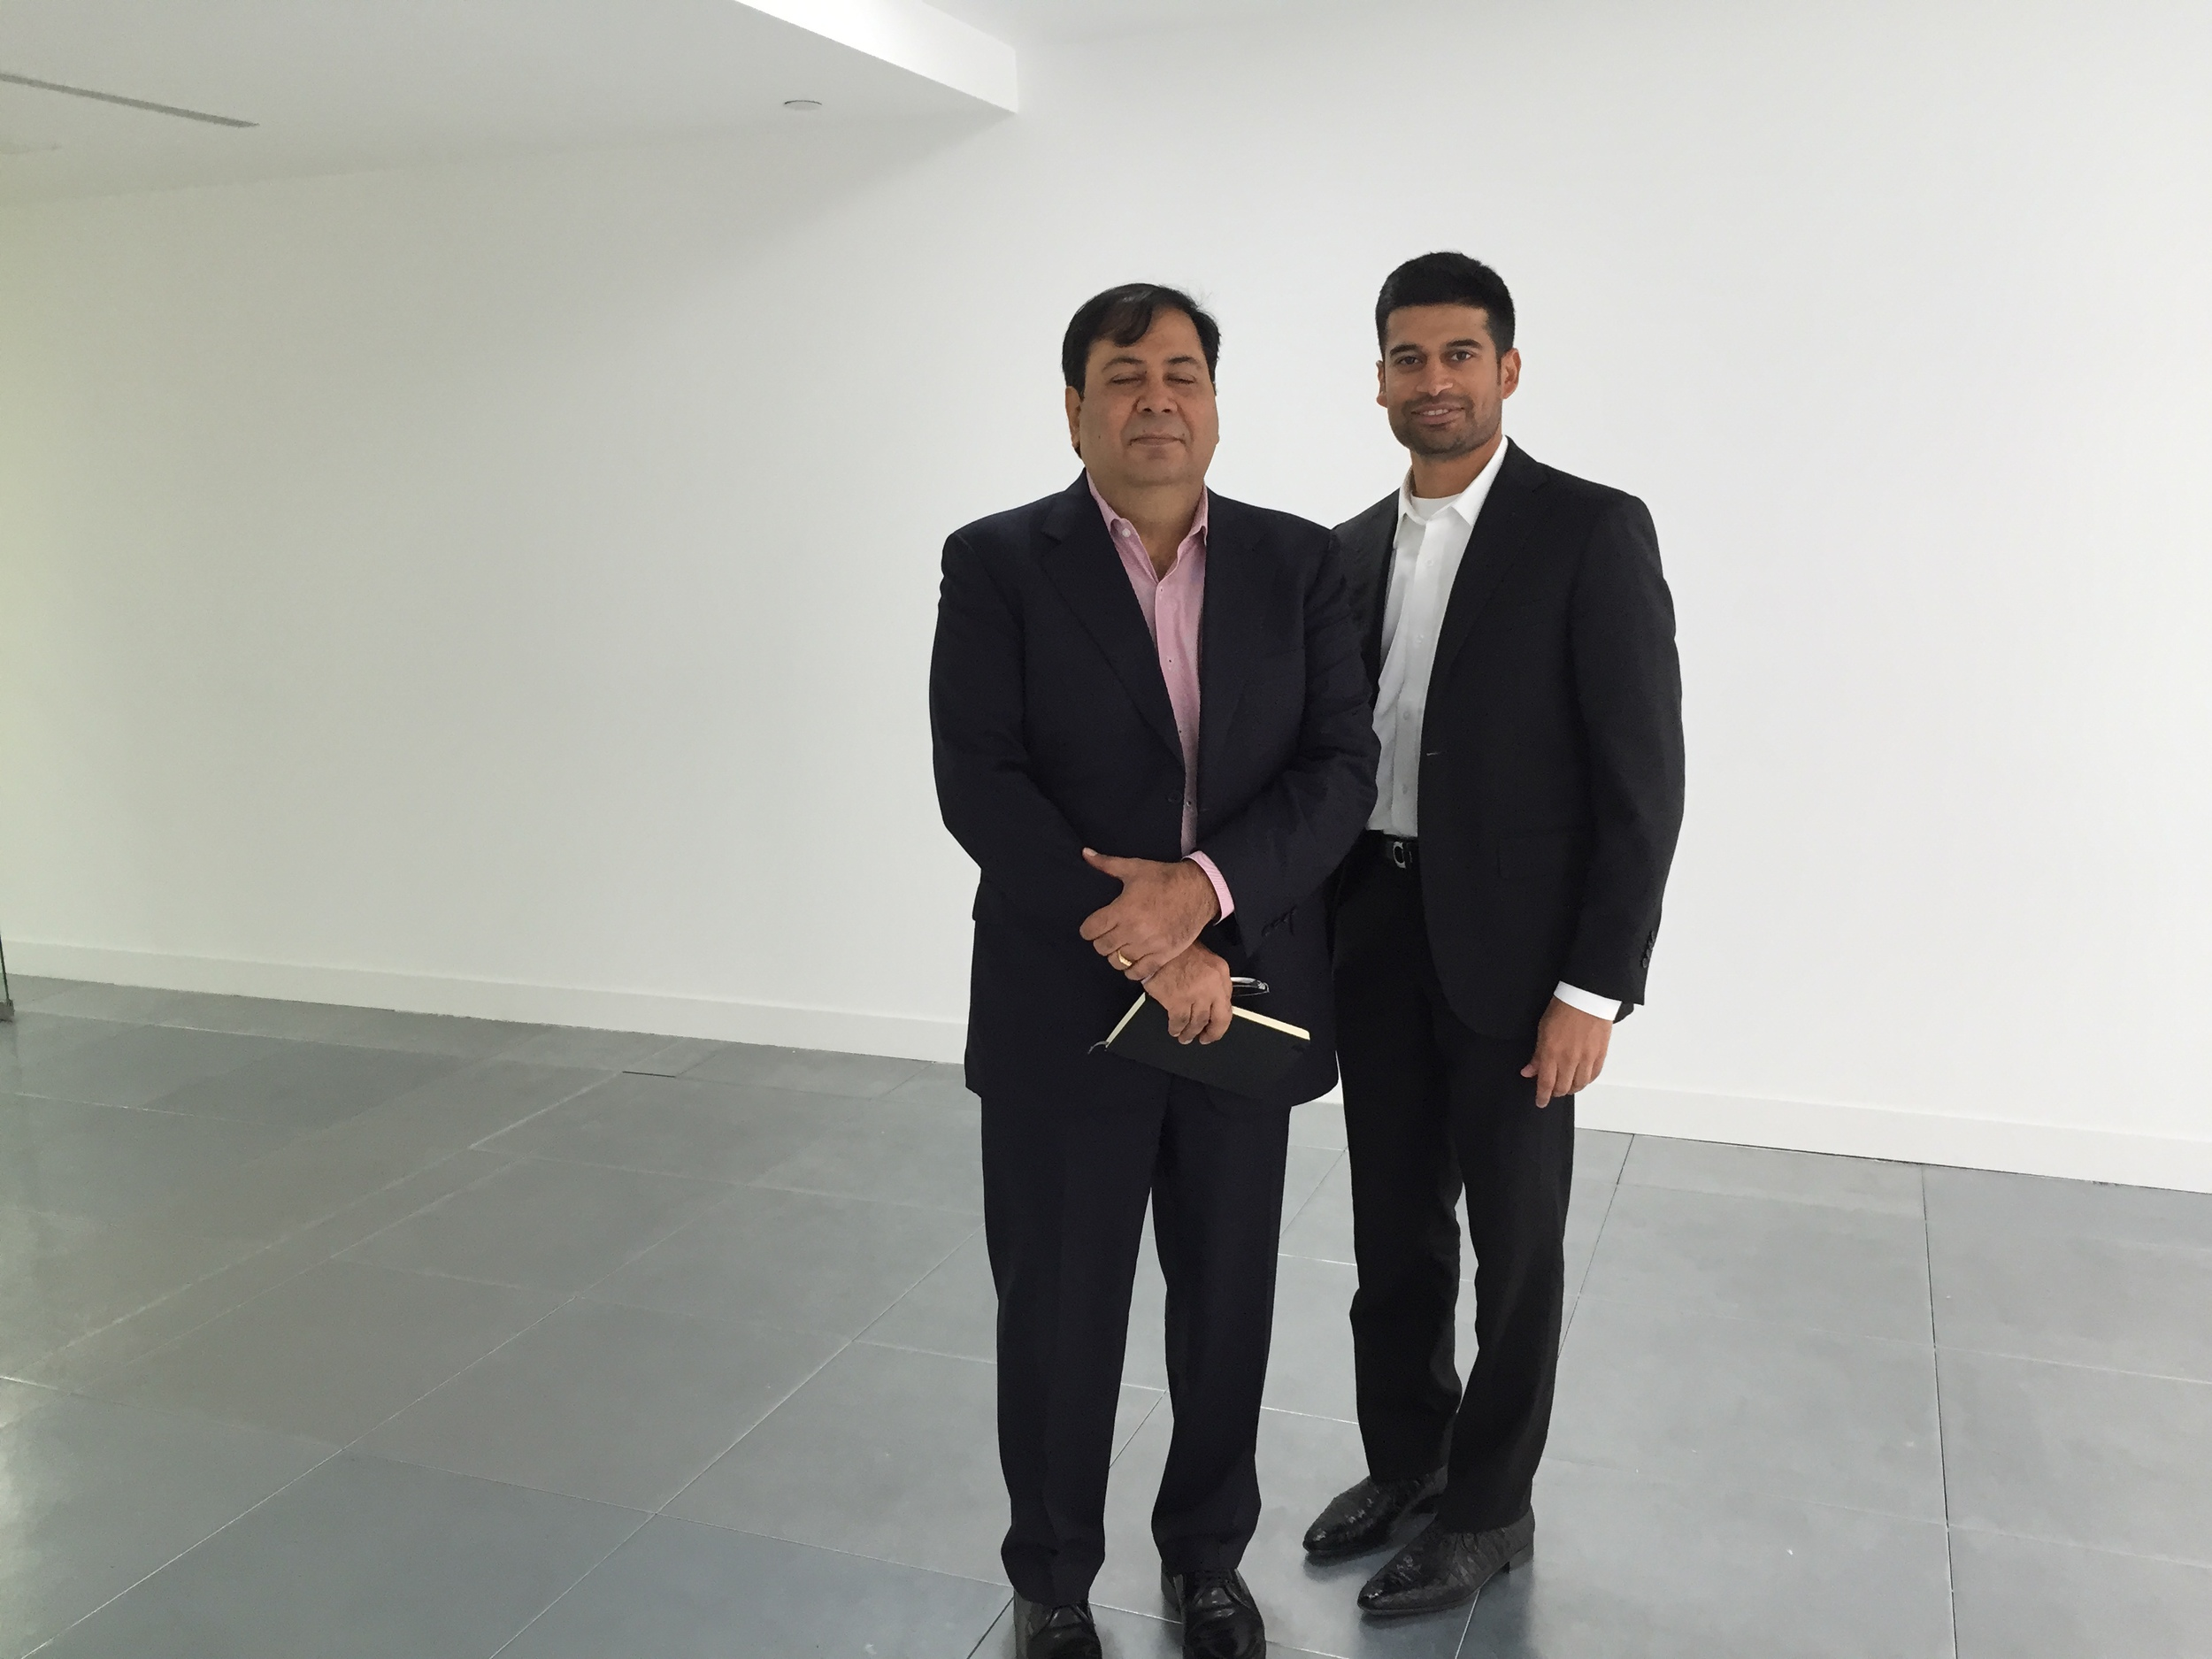 (Left to Right): Mr. Suresh Nichani and Mr. Ravi PNC Menon